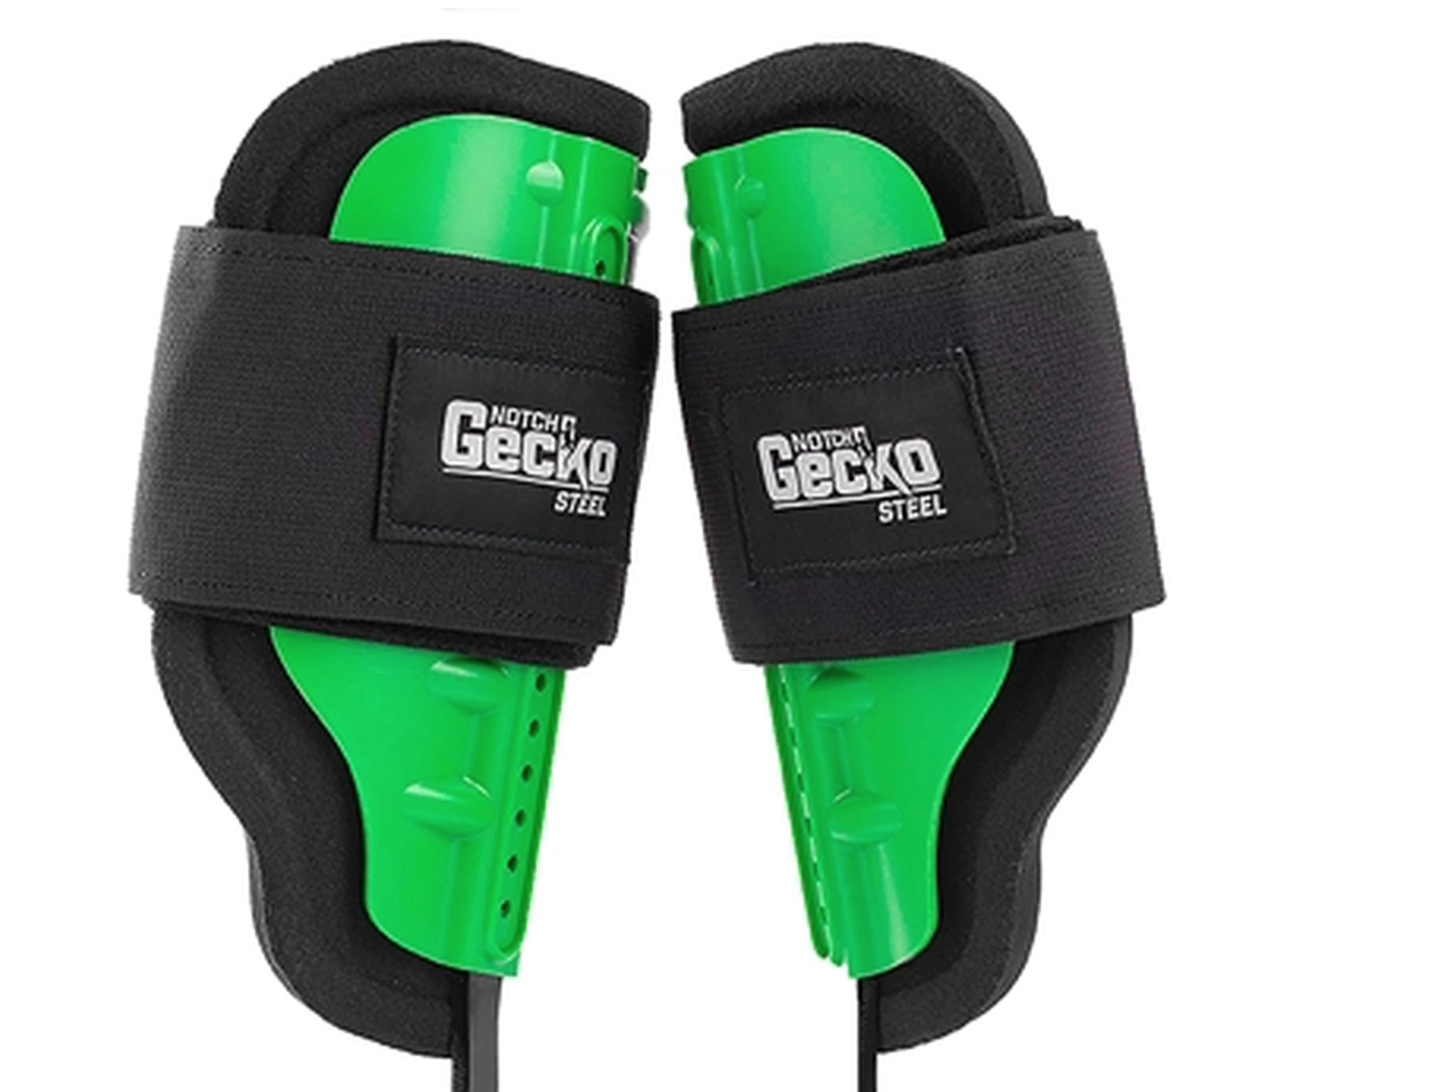 Notch Replacement Pads with Velcro Straps for Notch/Gecko Steel Climbers